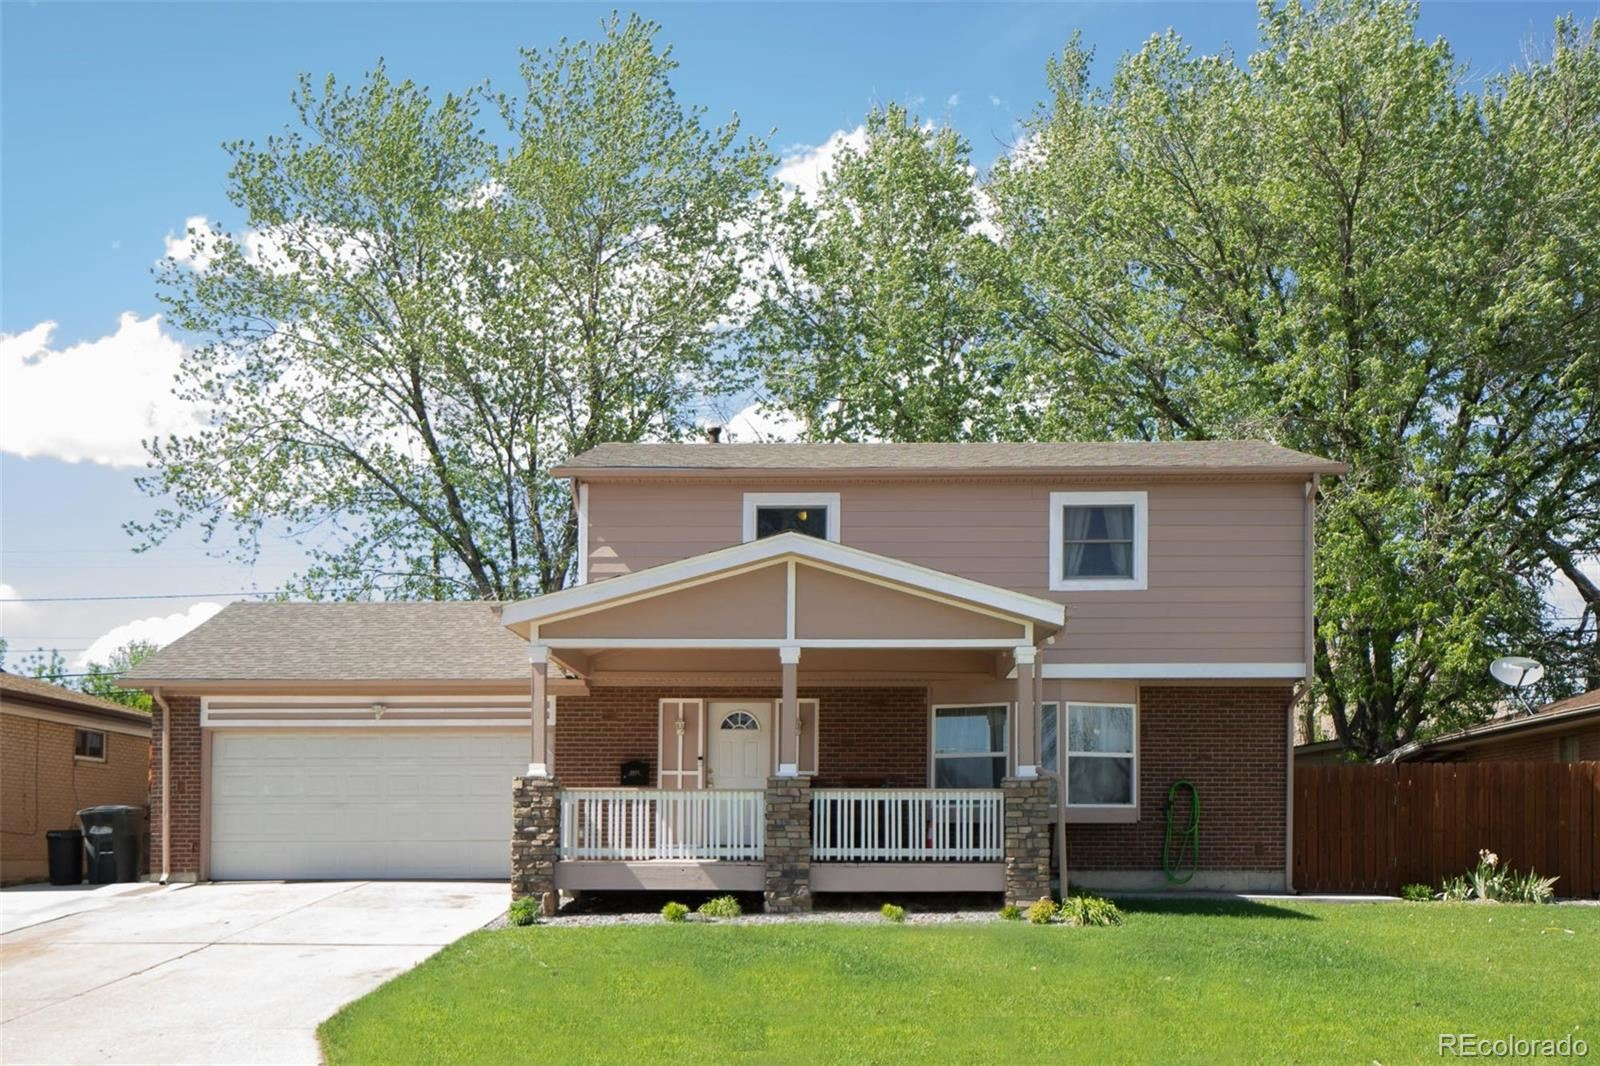 Property Image Of 2021 W 82Nd Place In Denver, Co